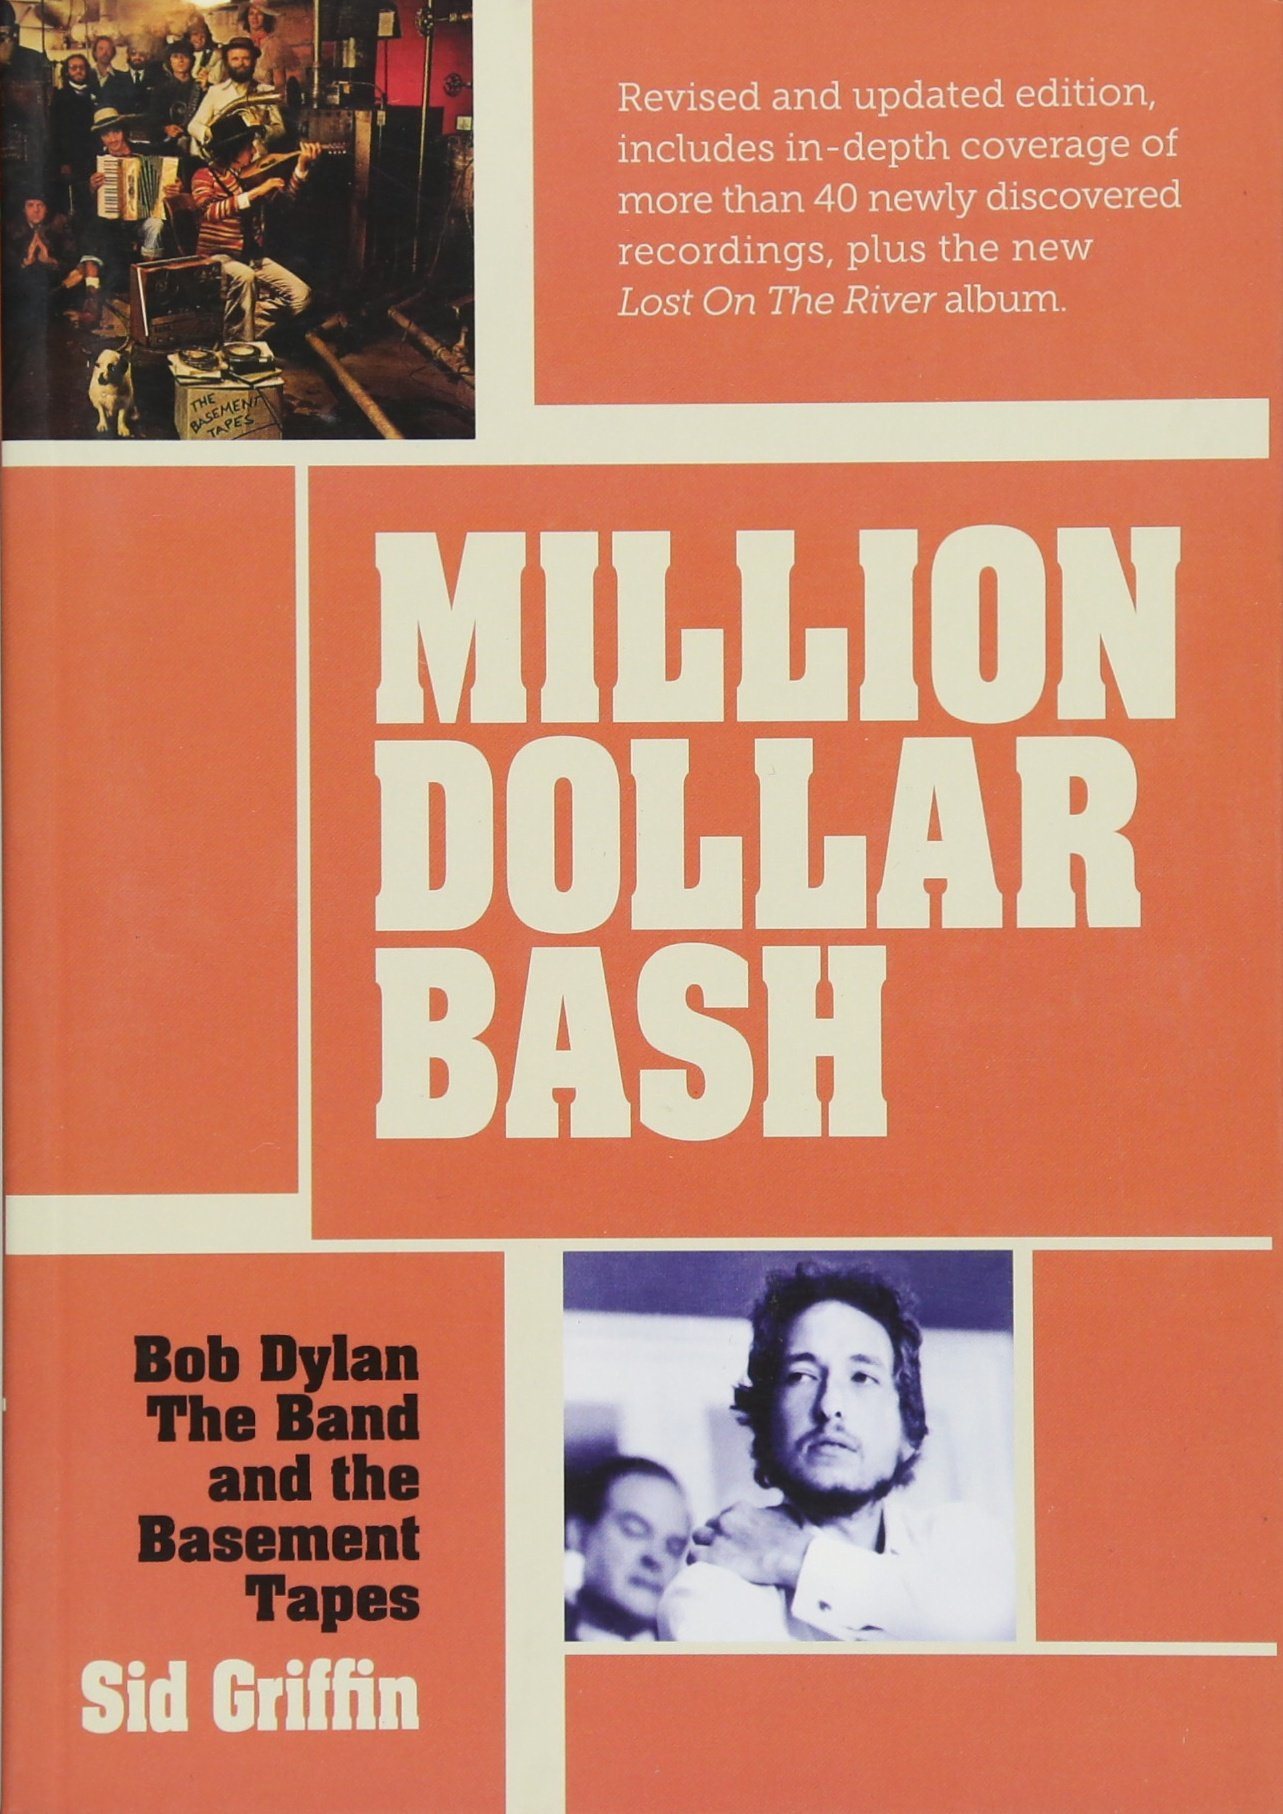 Million Dollar Bash: Bob Dylan, The Band and the Basement Tapes. Revised and updated edition PDF